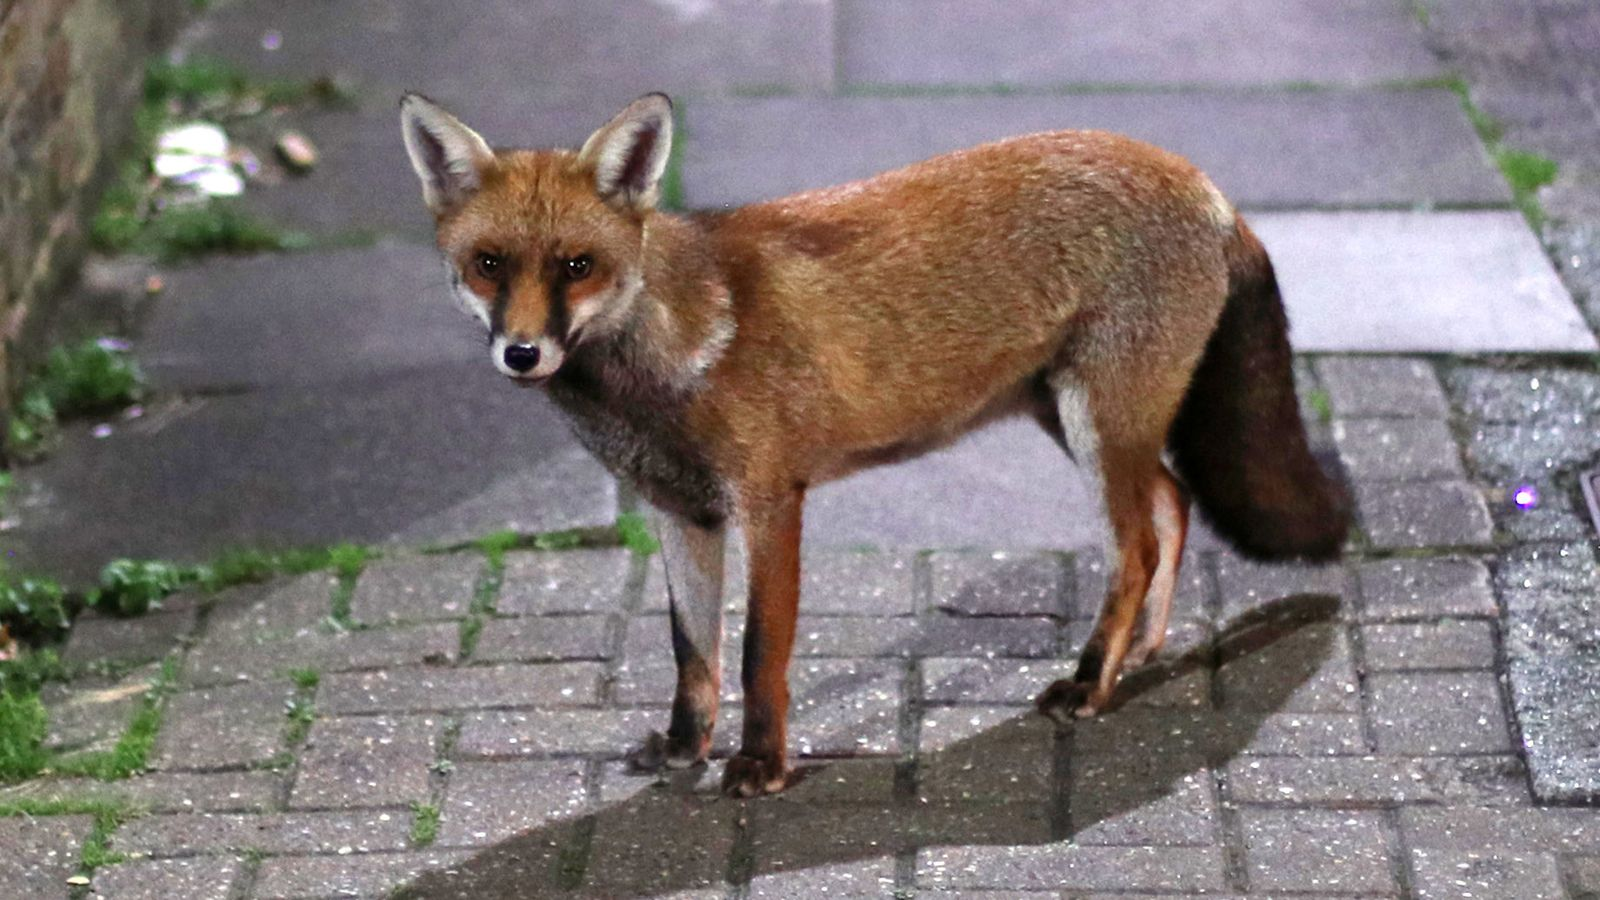 Urban fox evolution 'suggests how dogs became domesticated' - Sky News